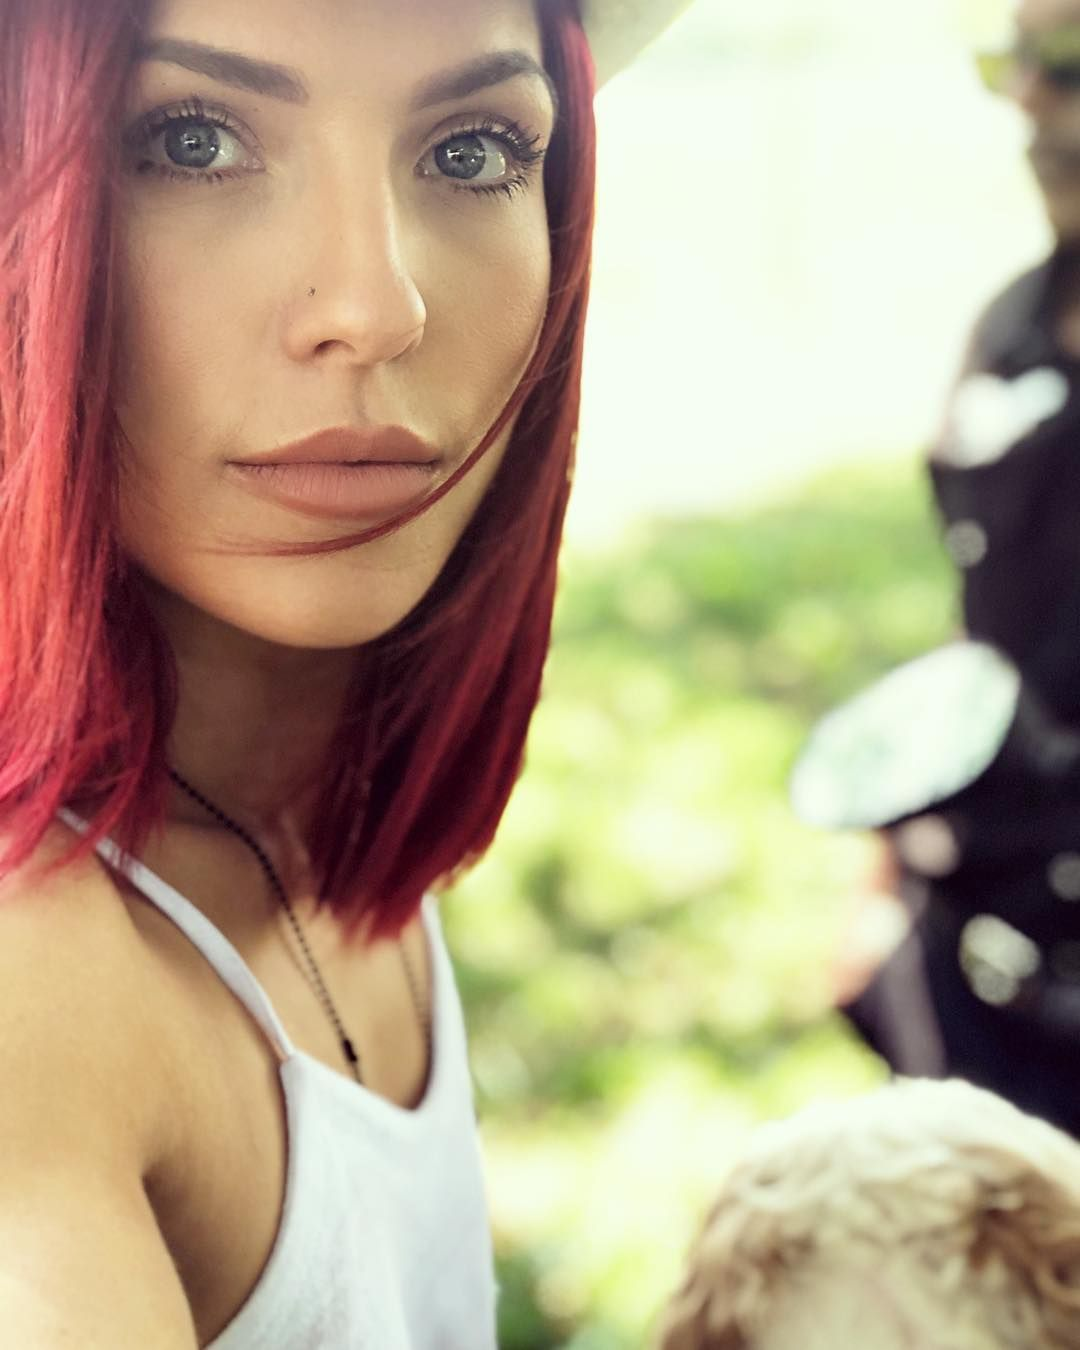 Selfie Sharna Burgess naked (94 foto and video), Sexy, Cleavage, Twitter, butt 2018